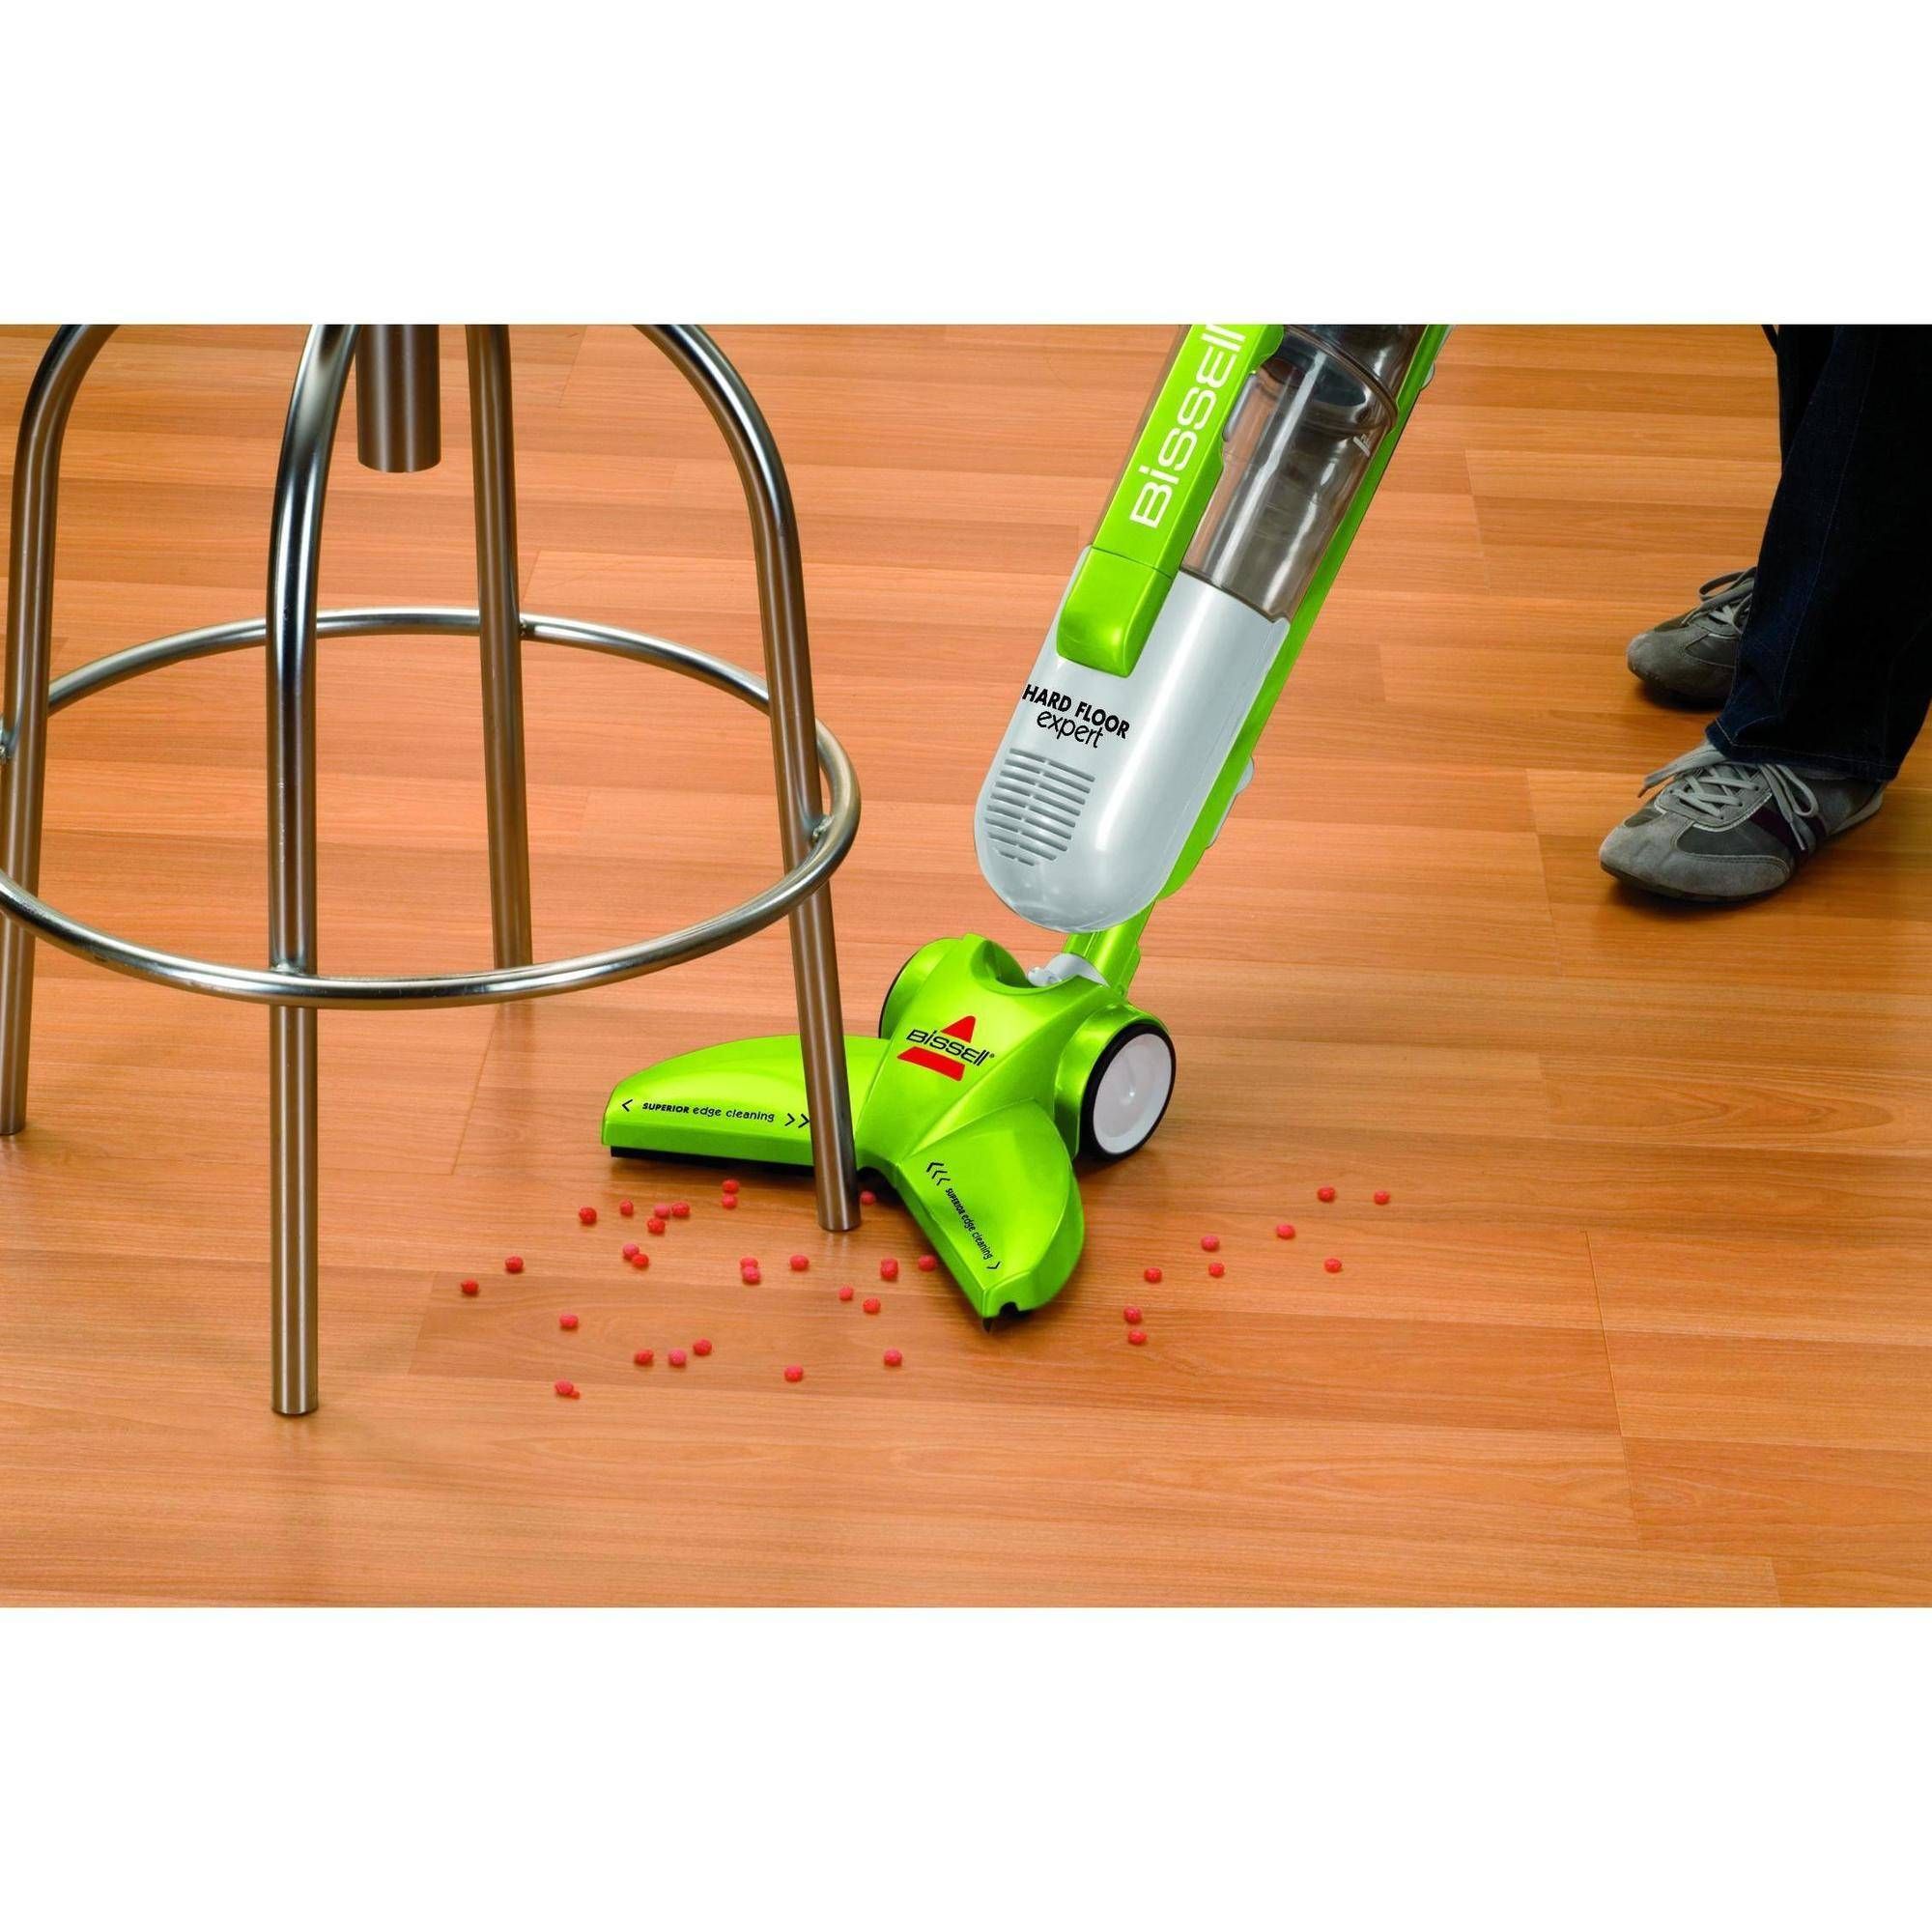 powered away floorcare wood bagless gbuk lift home cleaner shark buy blue image cleaners appliances upright vacuum pdt floor